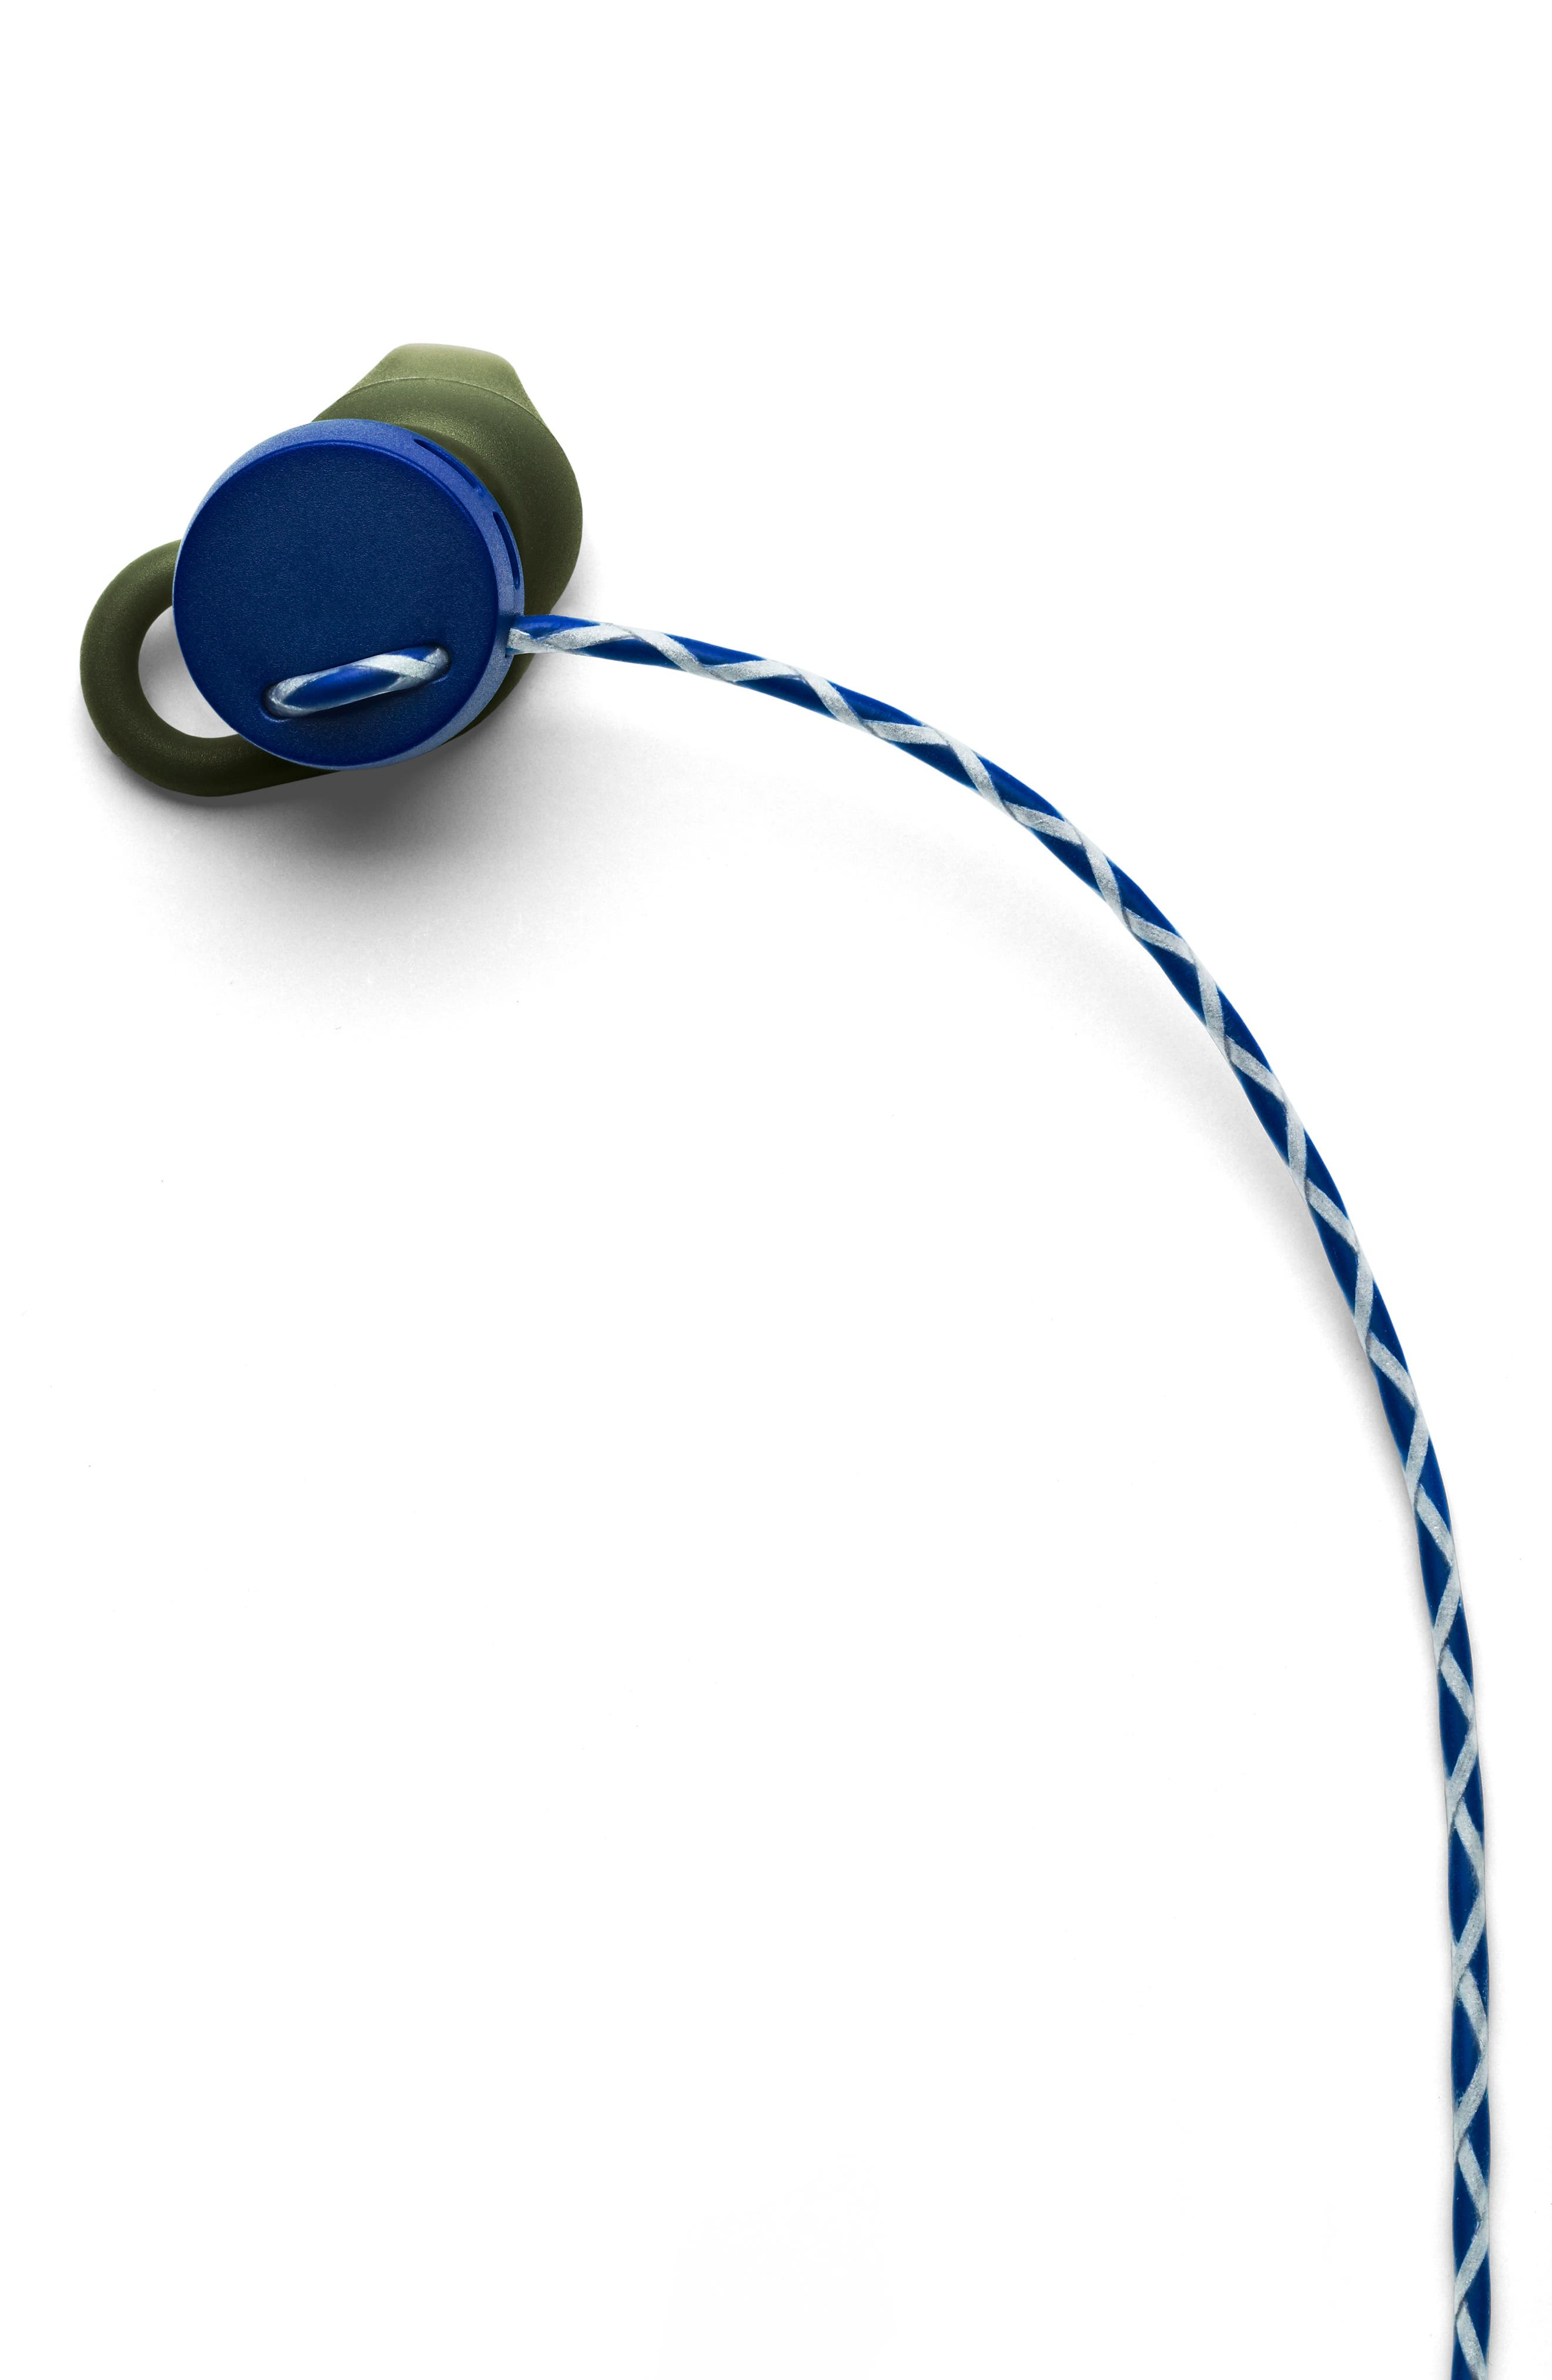 Reimers Apple Edition Earbuds,                             Alternate thumbnail 2, color,                             TRAIL